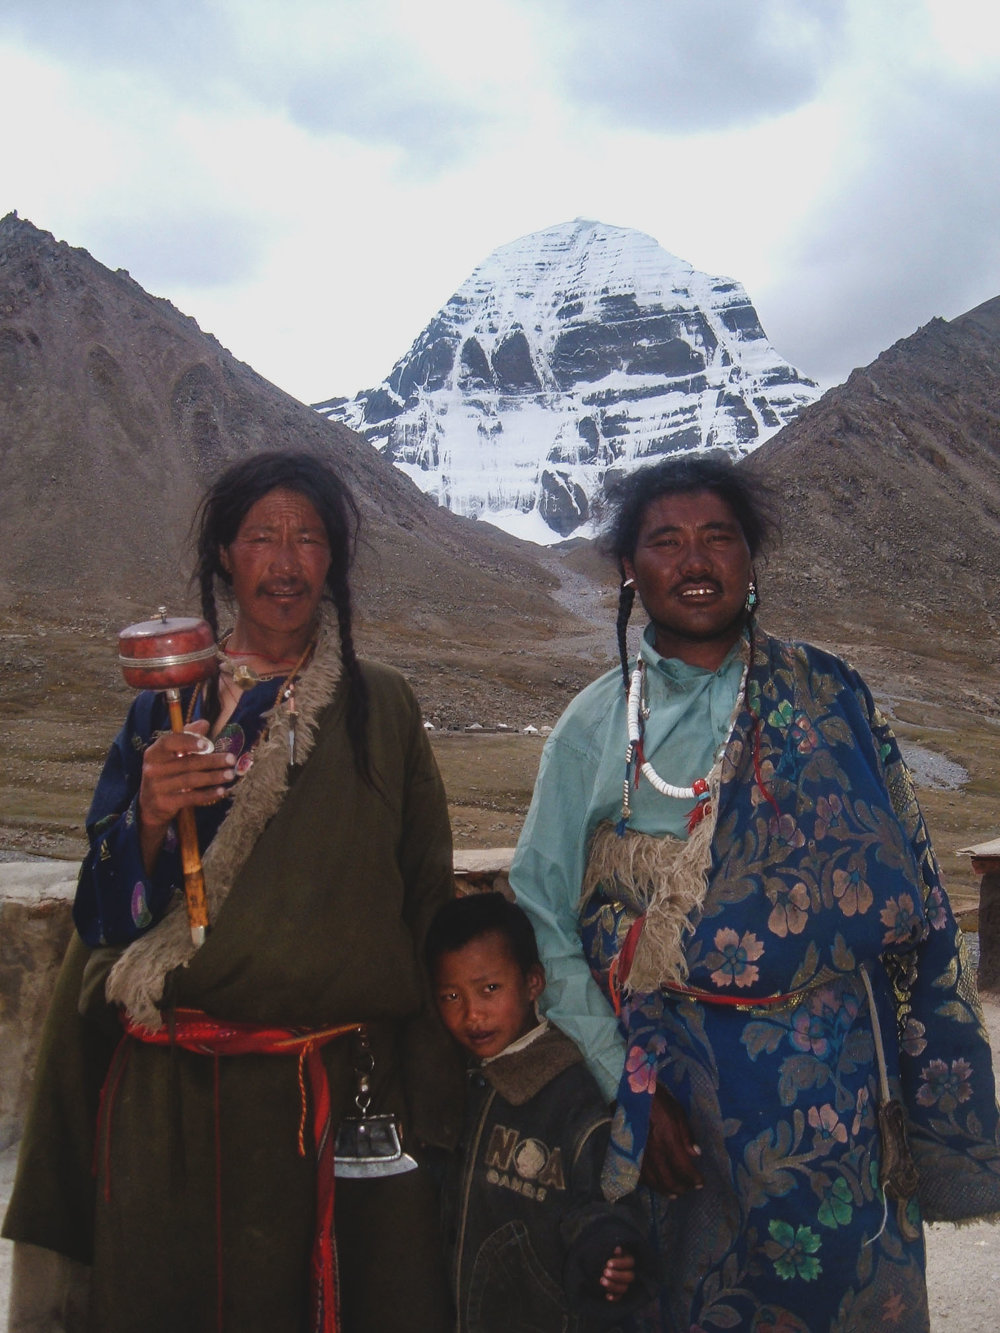 Tibetan Men & Child at Mt. Kailash